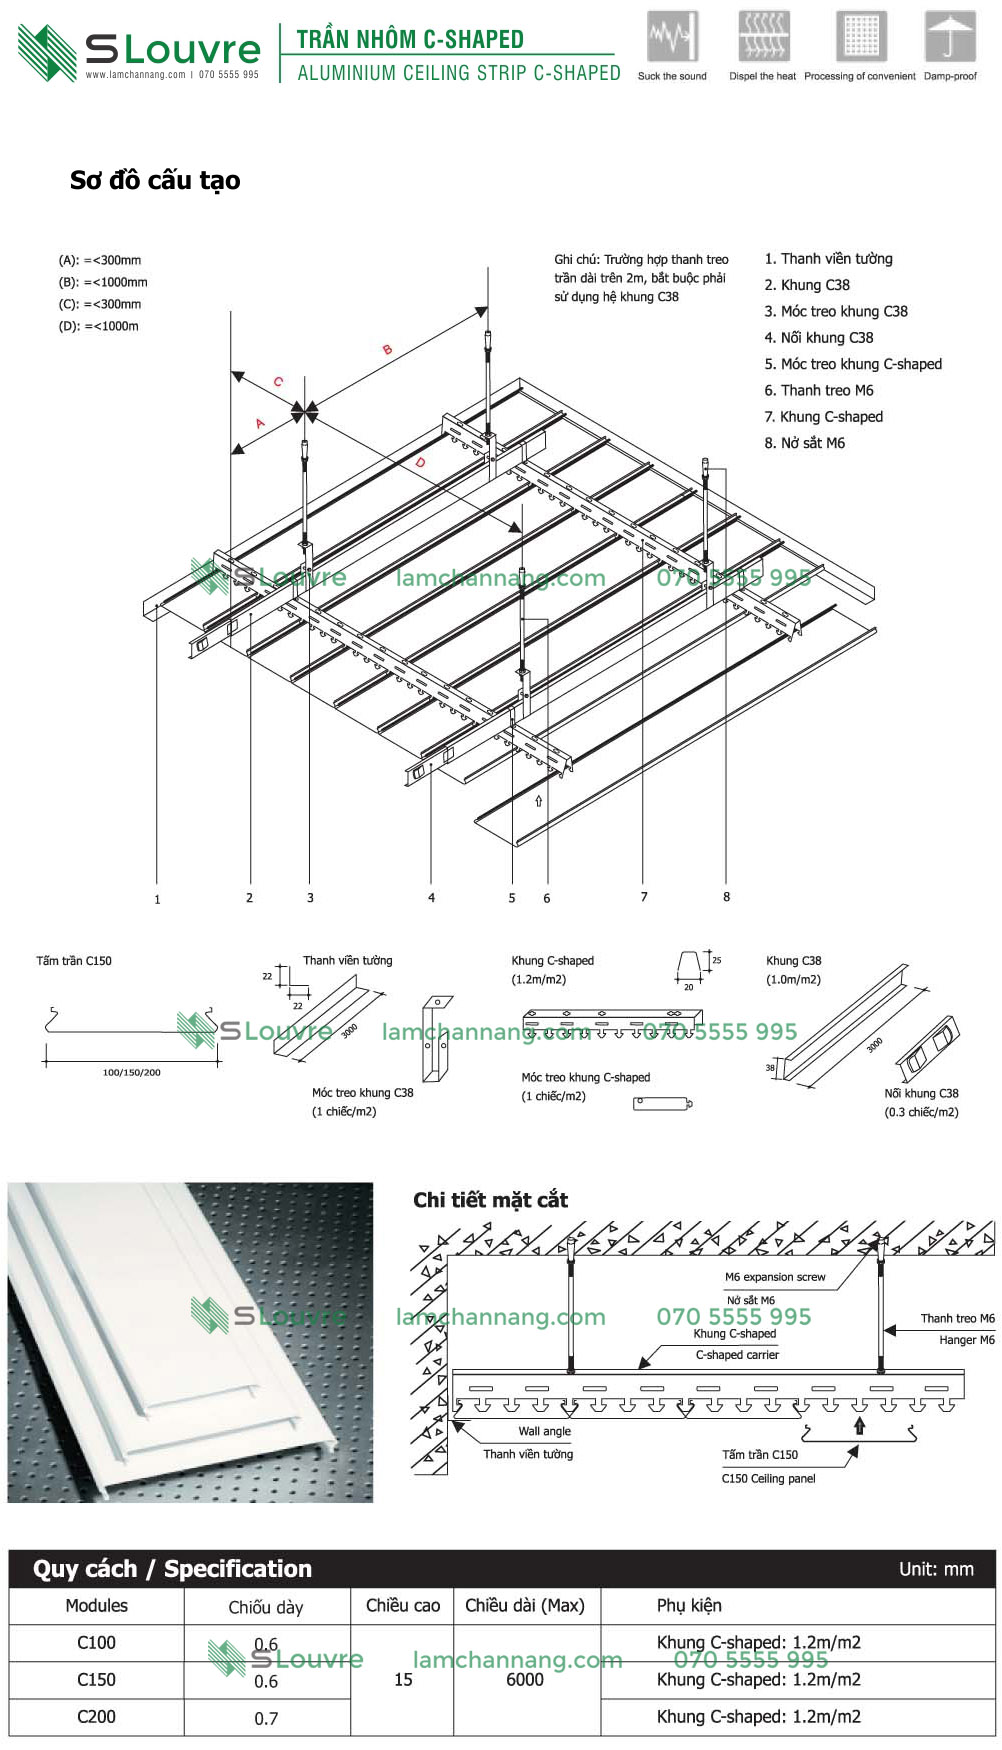 C-shapep Linear Strip Ceiling, Perforated Metal Ceiling, perforated aluminium ceiling, aluminium ceiling, trần nhôm sọc C, trần sọc C, trần nhôm chữ C, trần nhôm C-Shaped